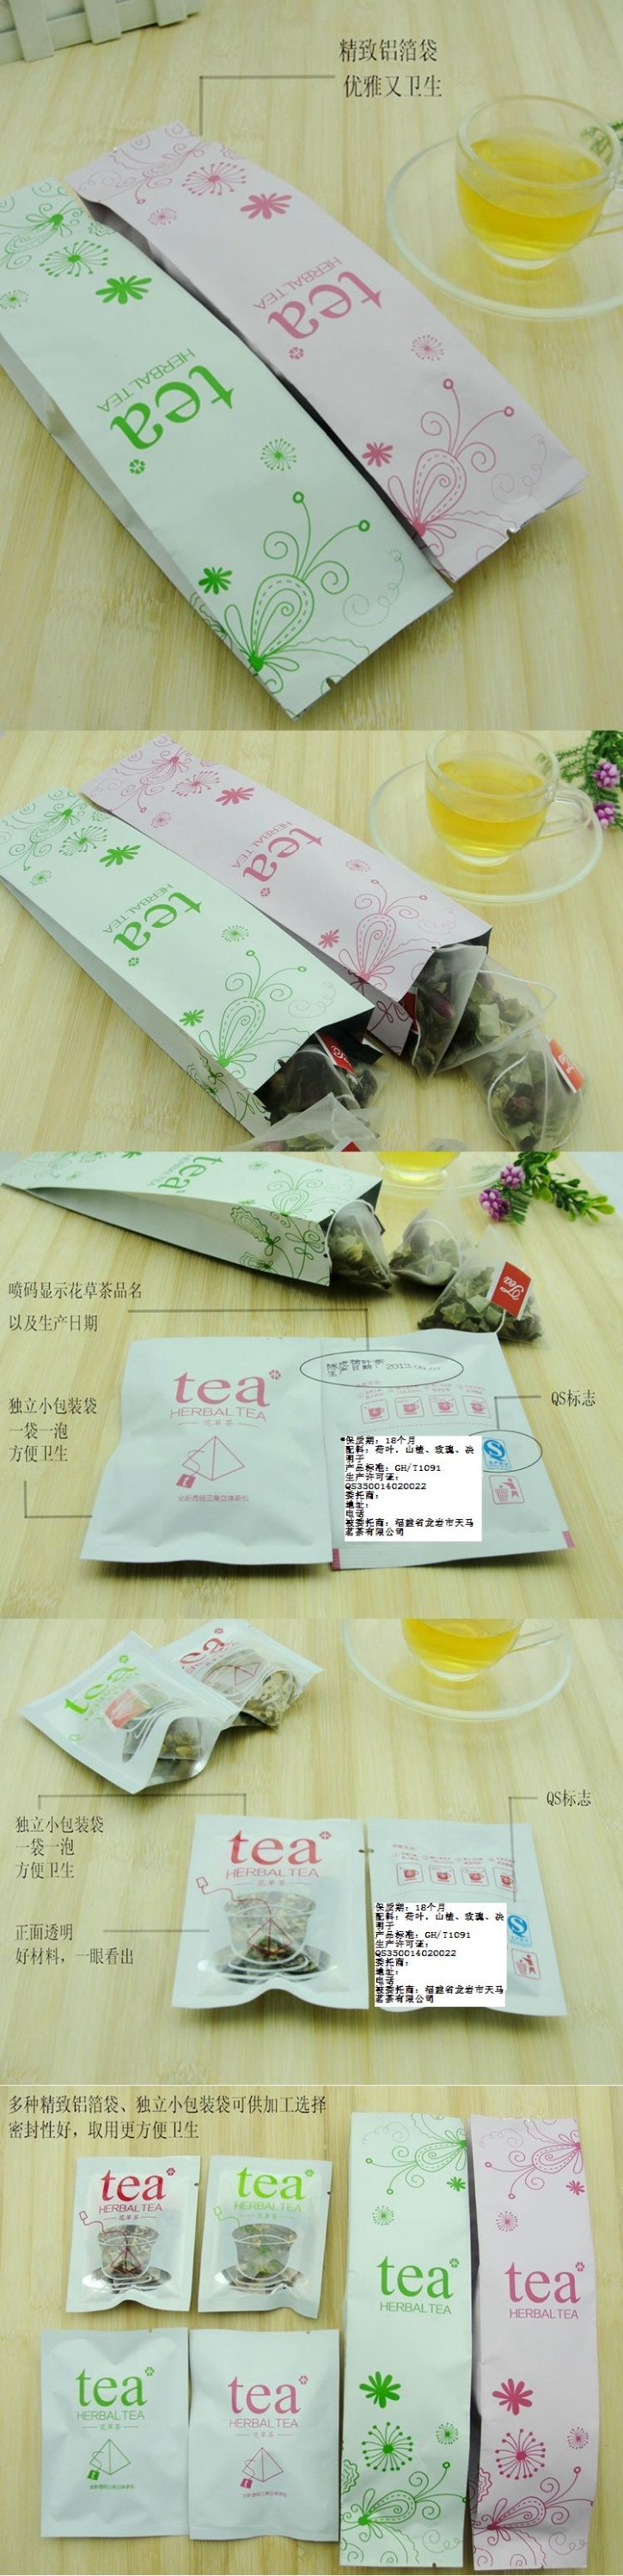 14 Day Detox Tea /Slimming Tea/3G Weight Loss Products Rose Lotus Leaf Tea